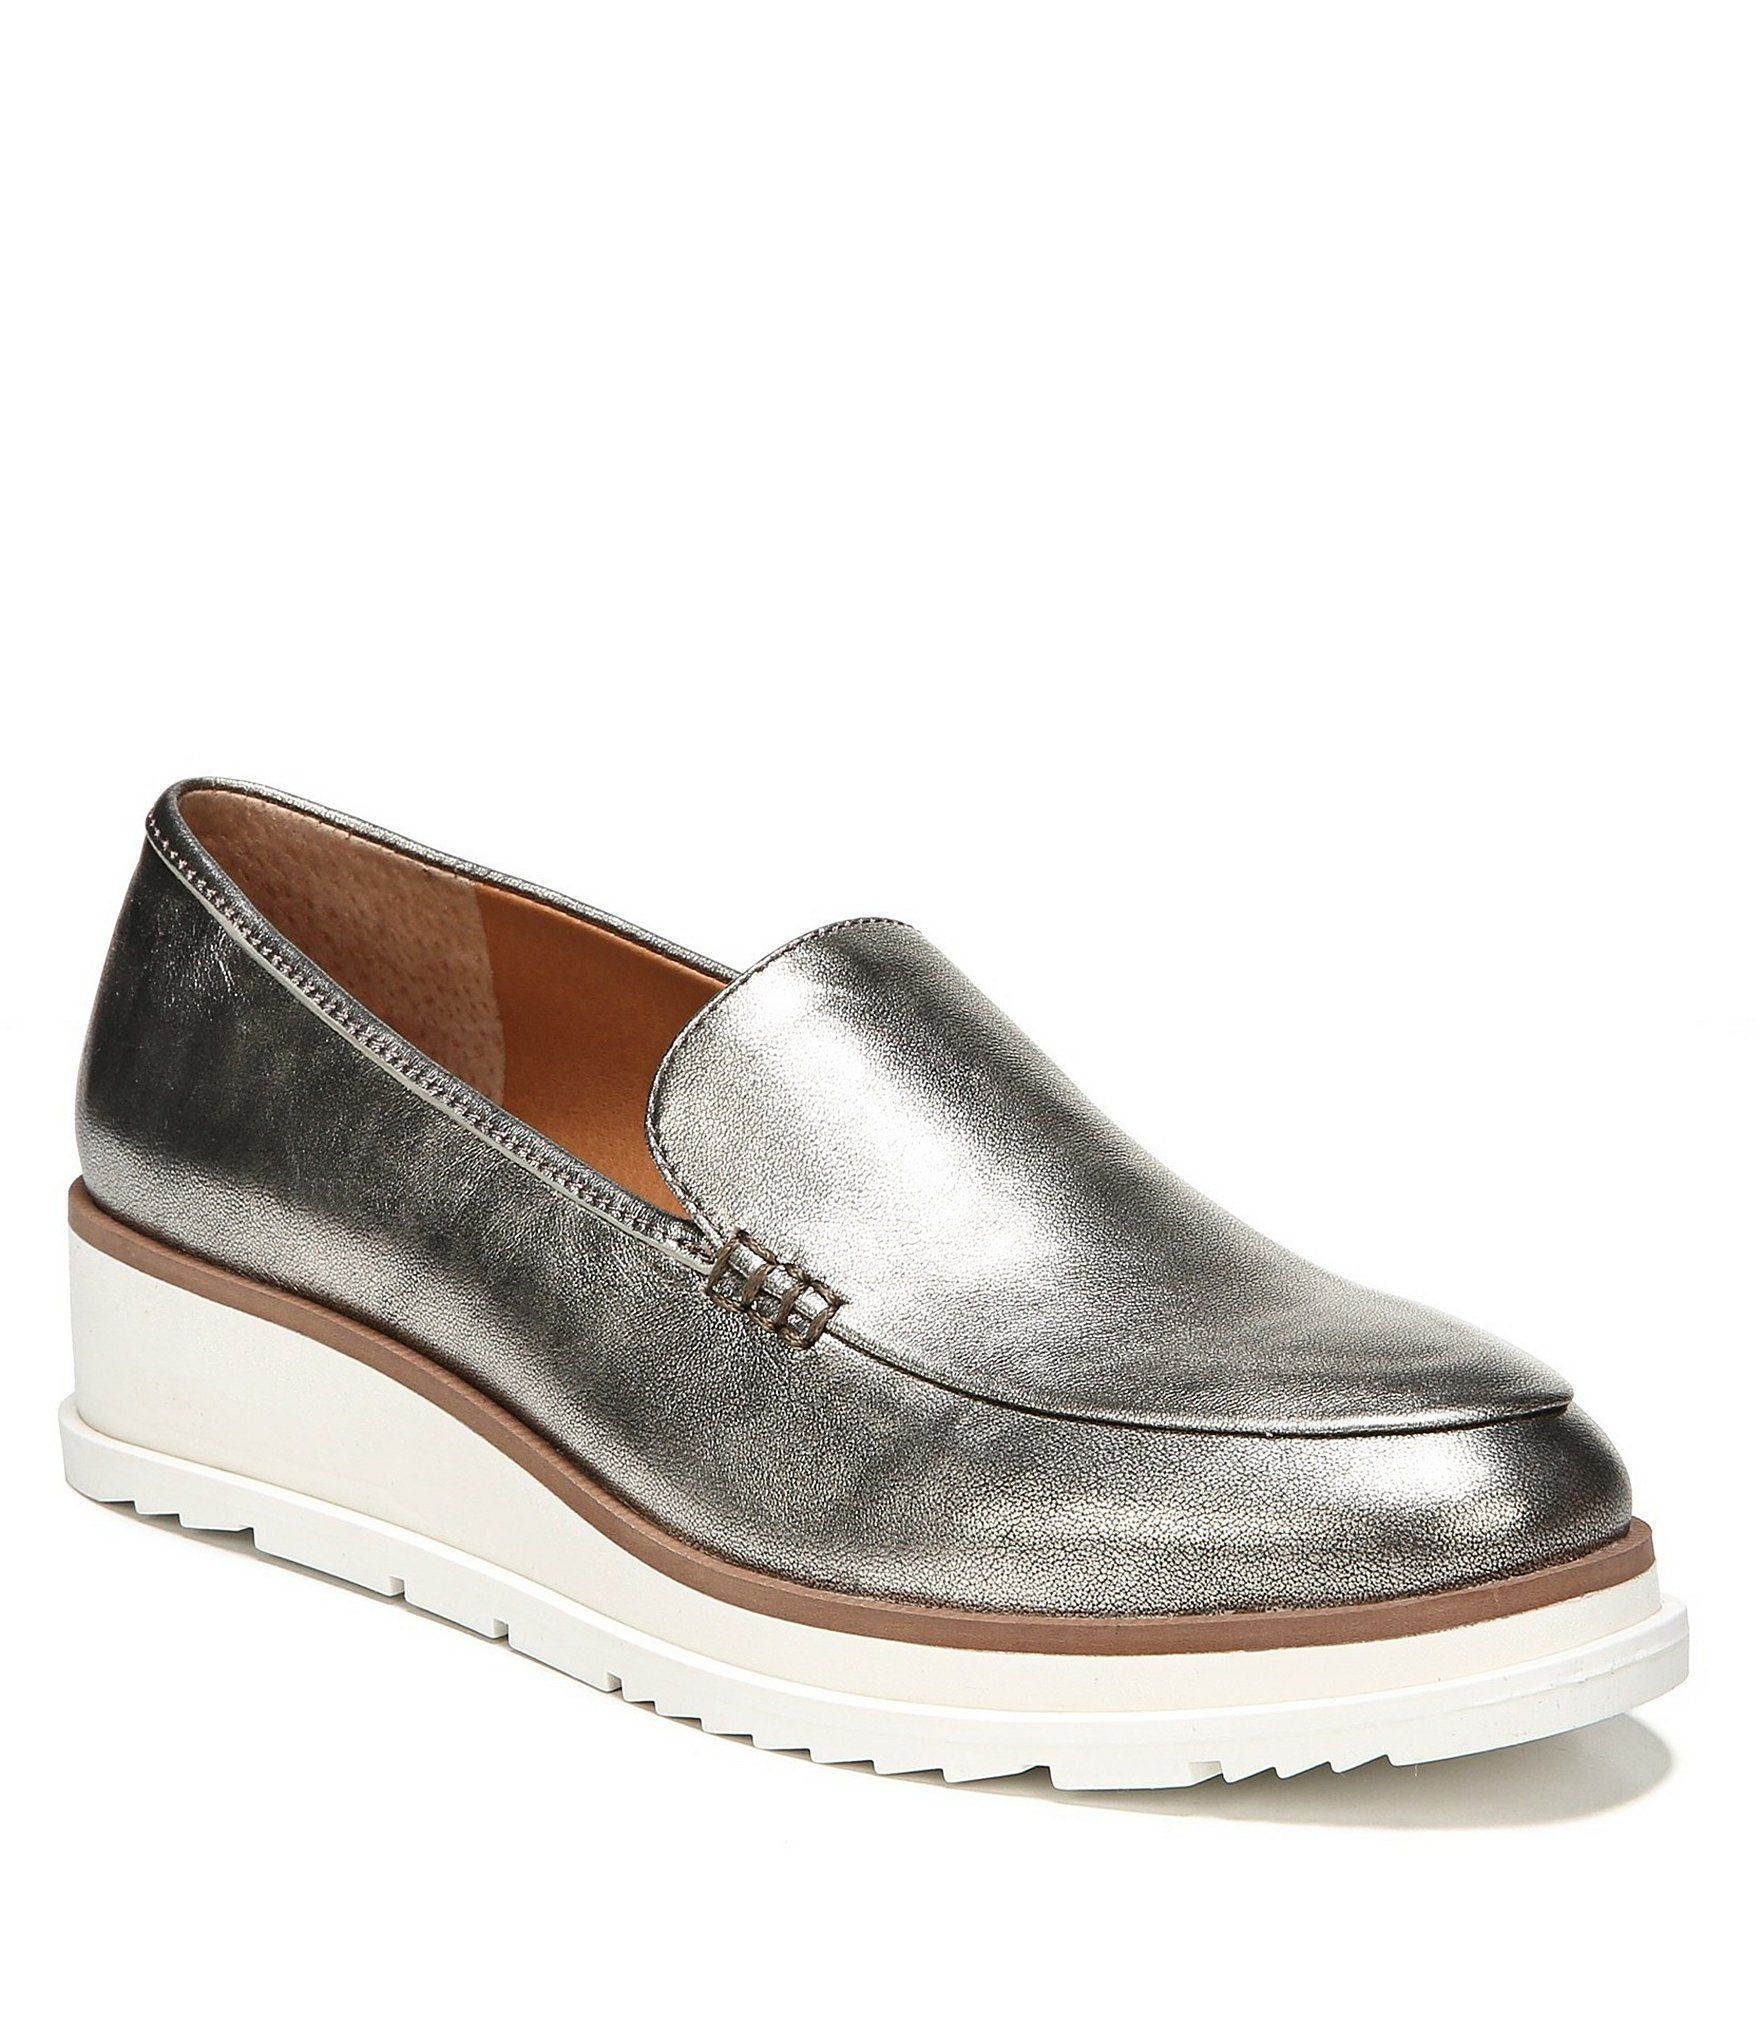 310408298f9 Sarto by Franco Sarto Ayers Metallic Leather Wedge Loafers in 2018 ...